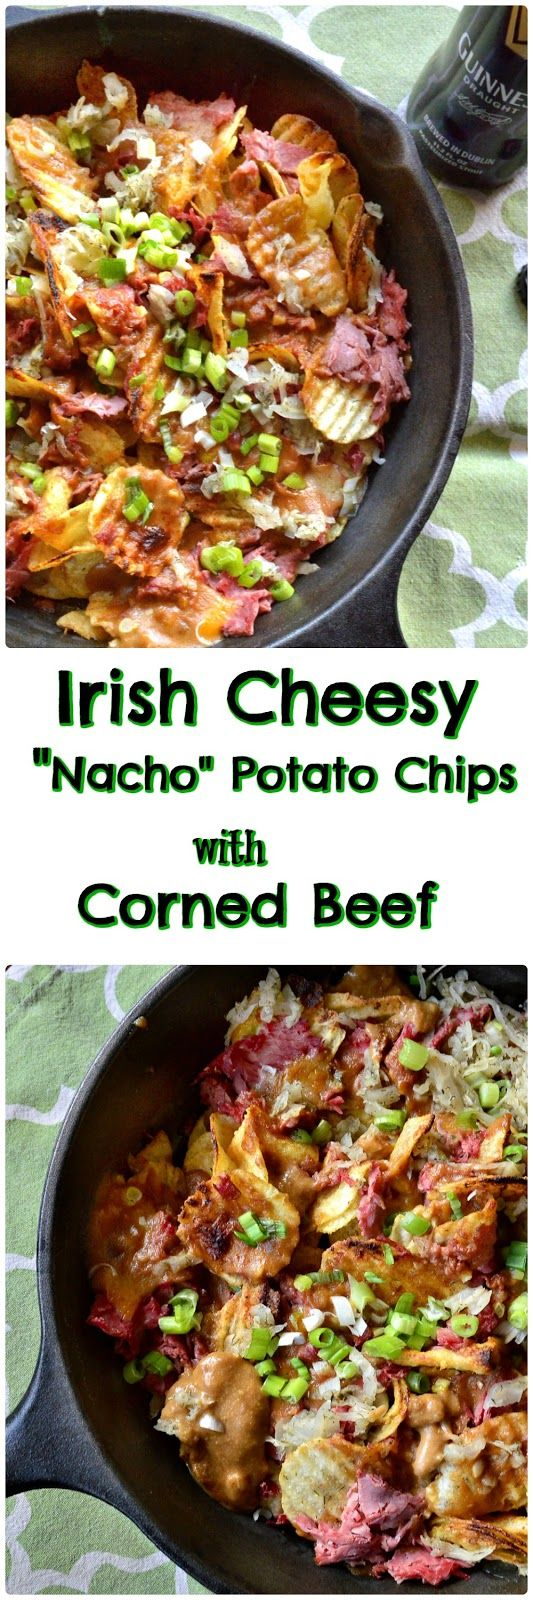 """These cheesy """"nacho style"""" potato chips, topped with corned beef and maybe sauerkraut, are perfect for St. Paddie's Day!"""